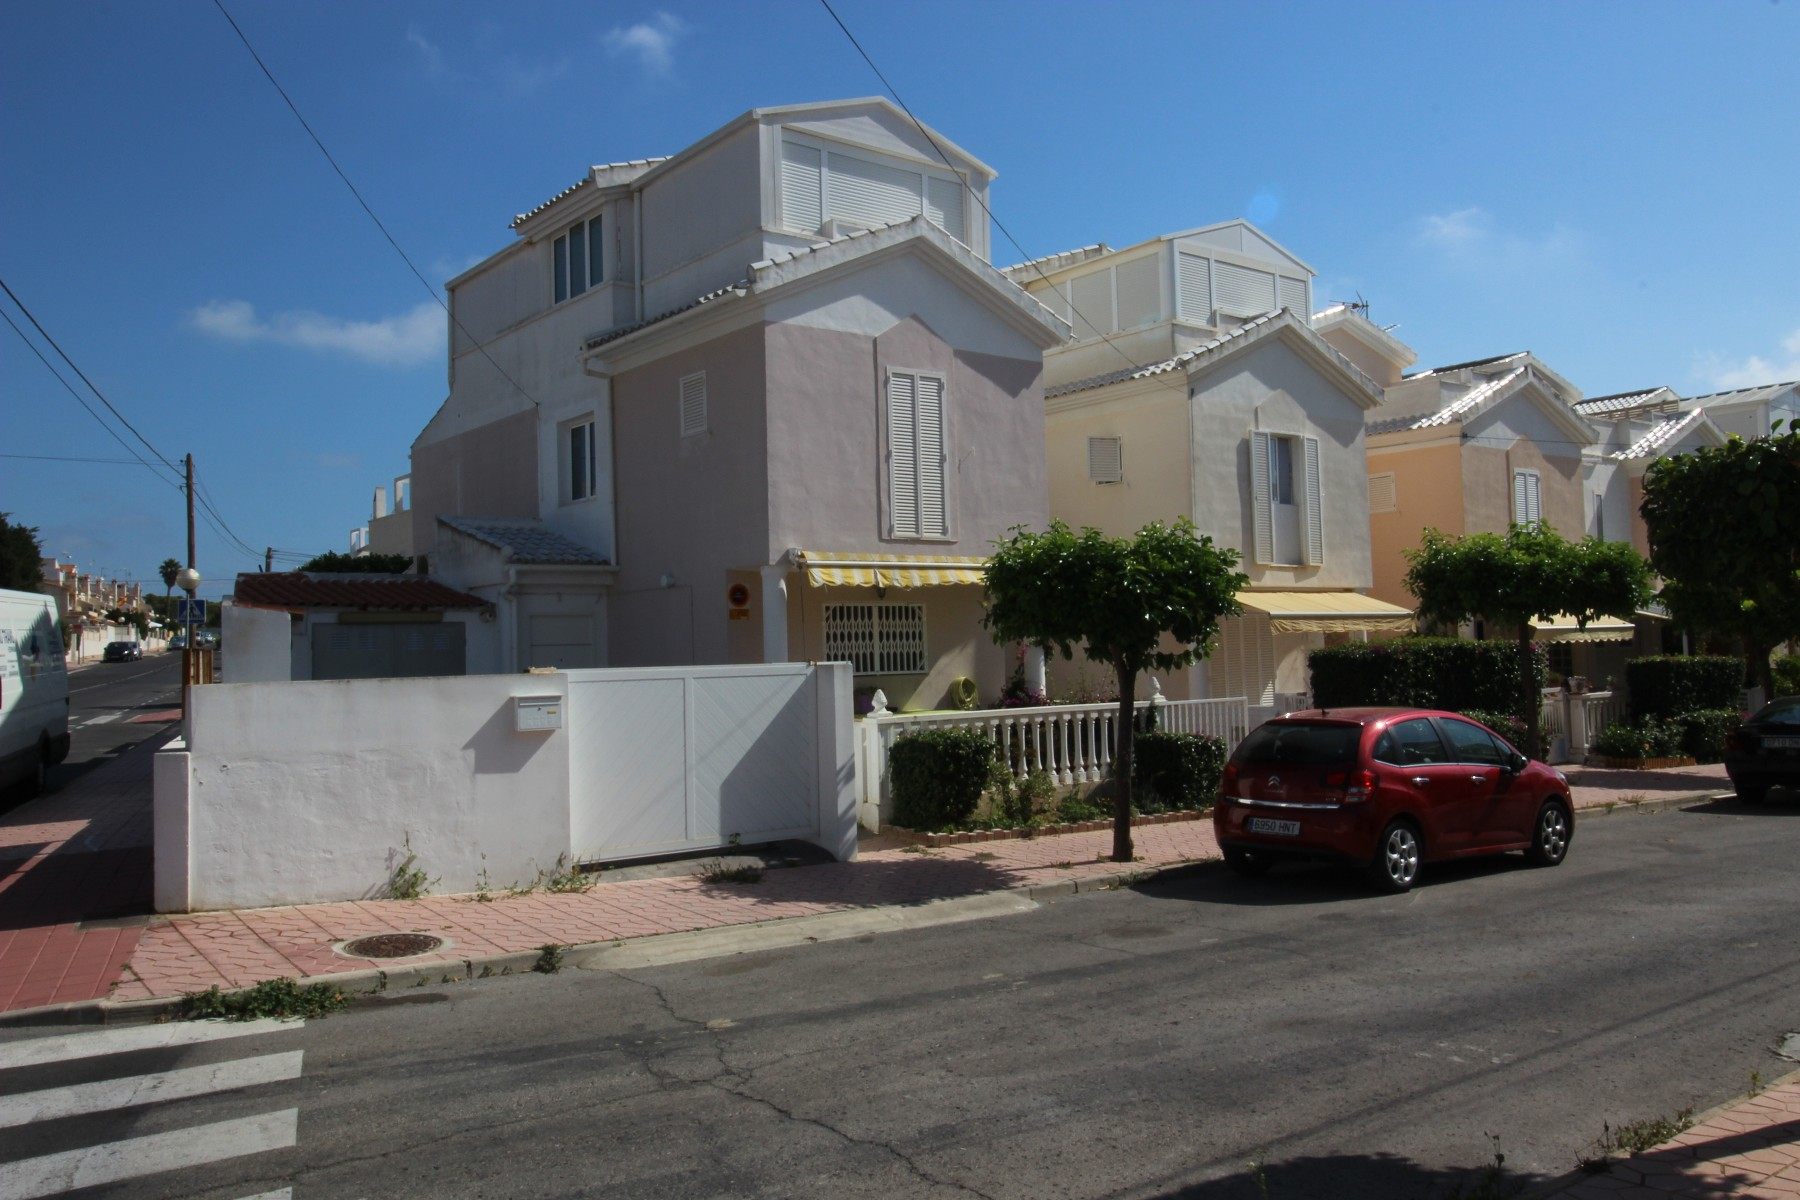 2 bedroom Terraced house in Zona Sur in Nexus Grupo